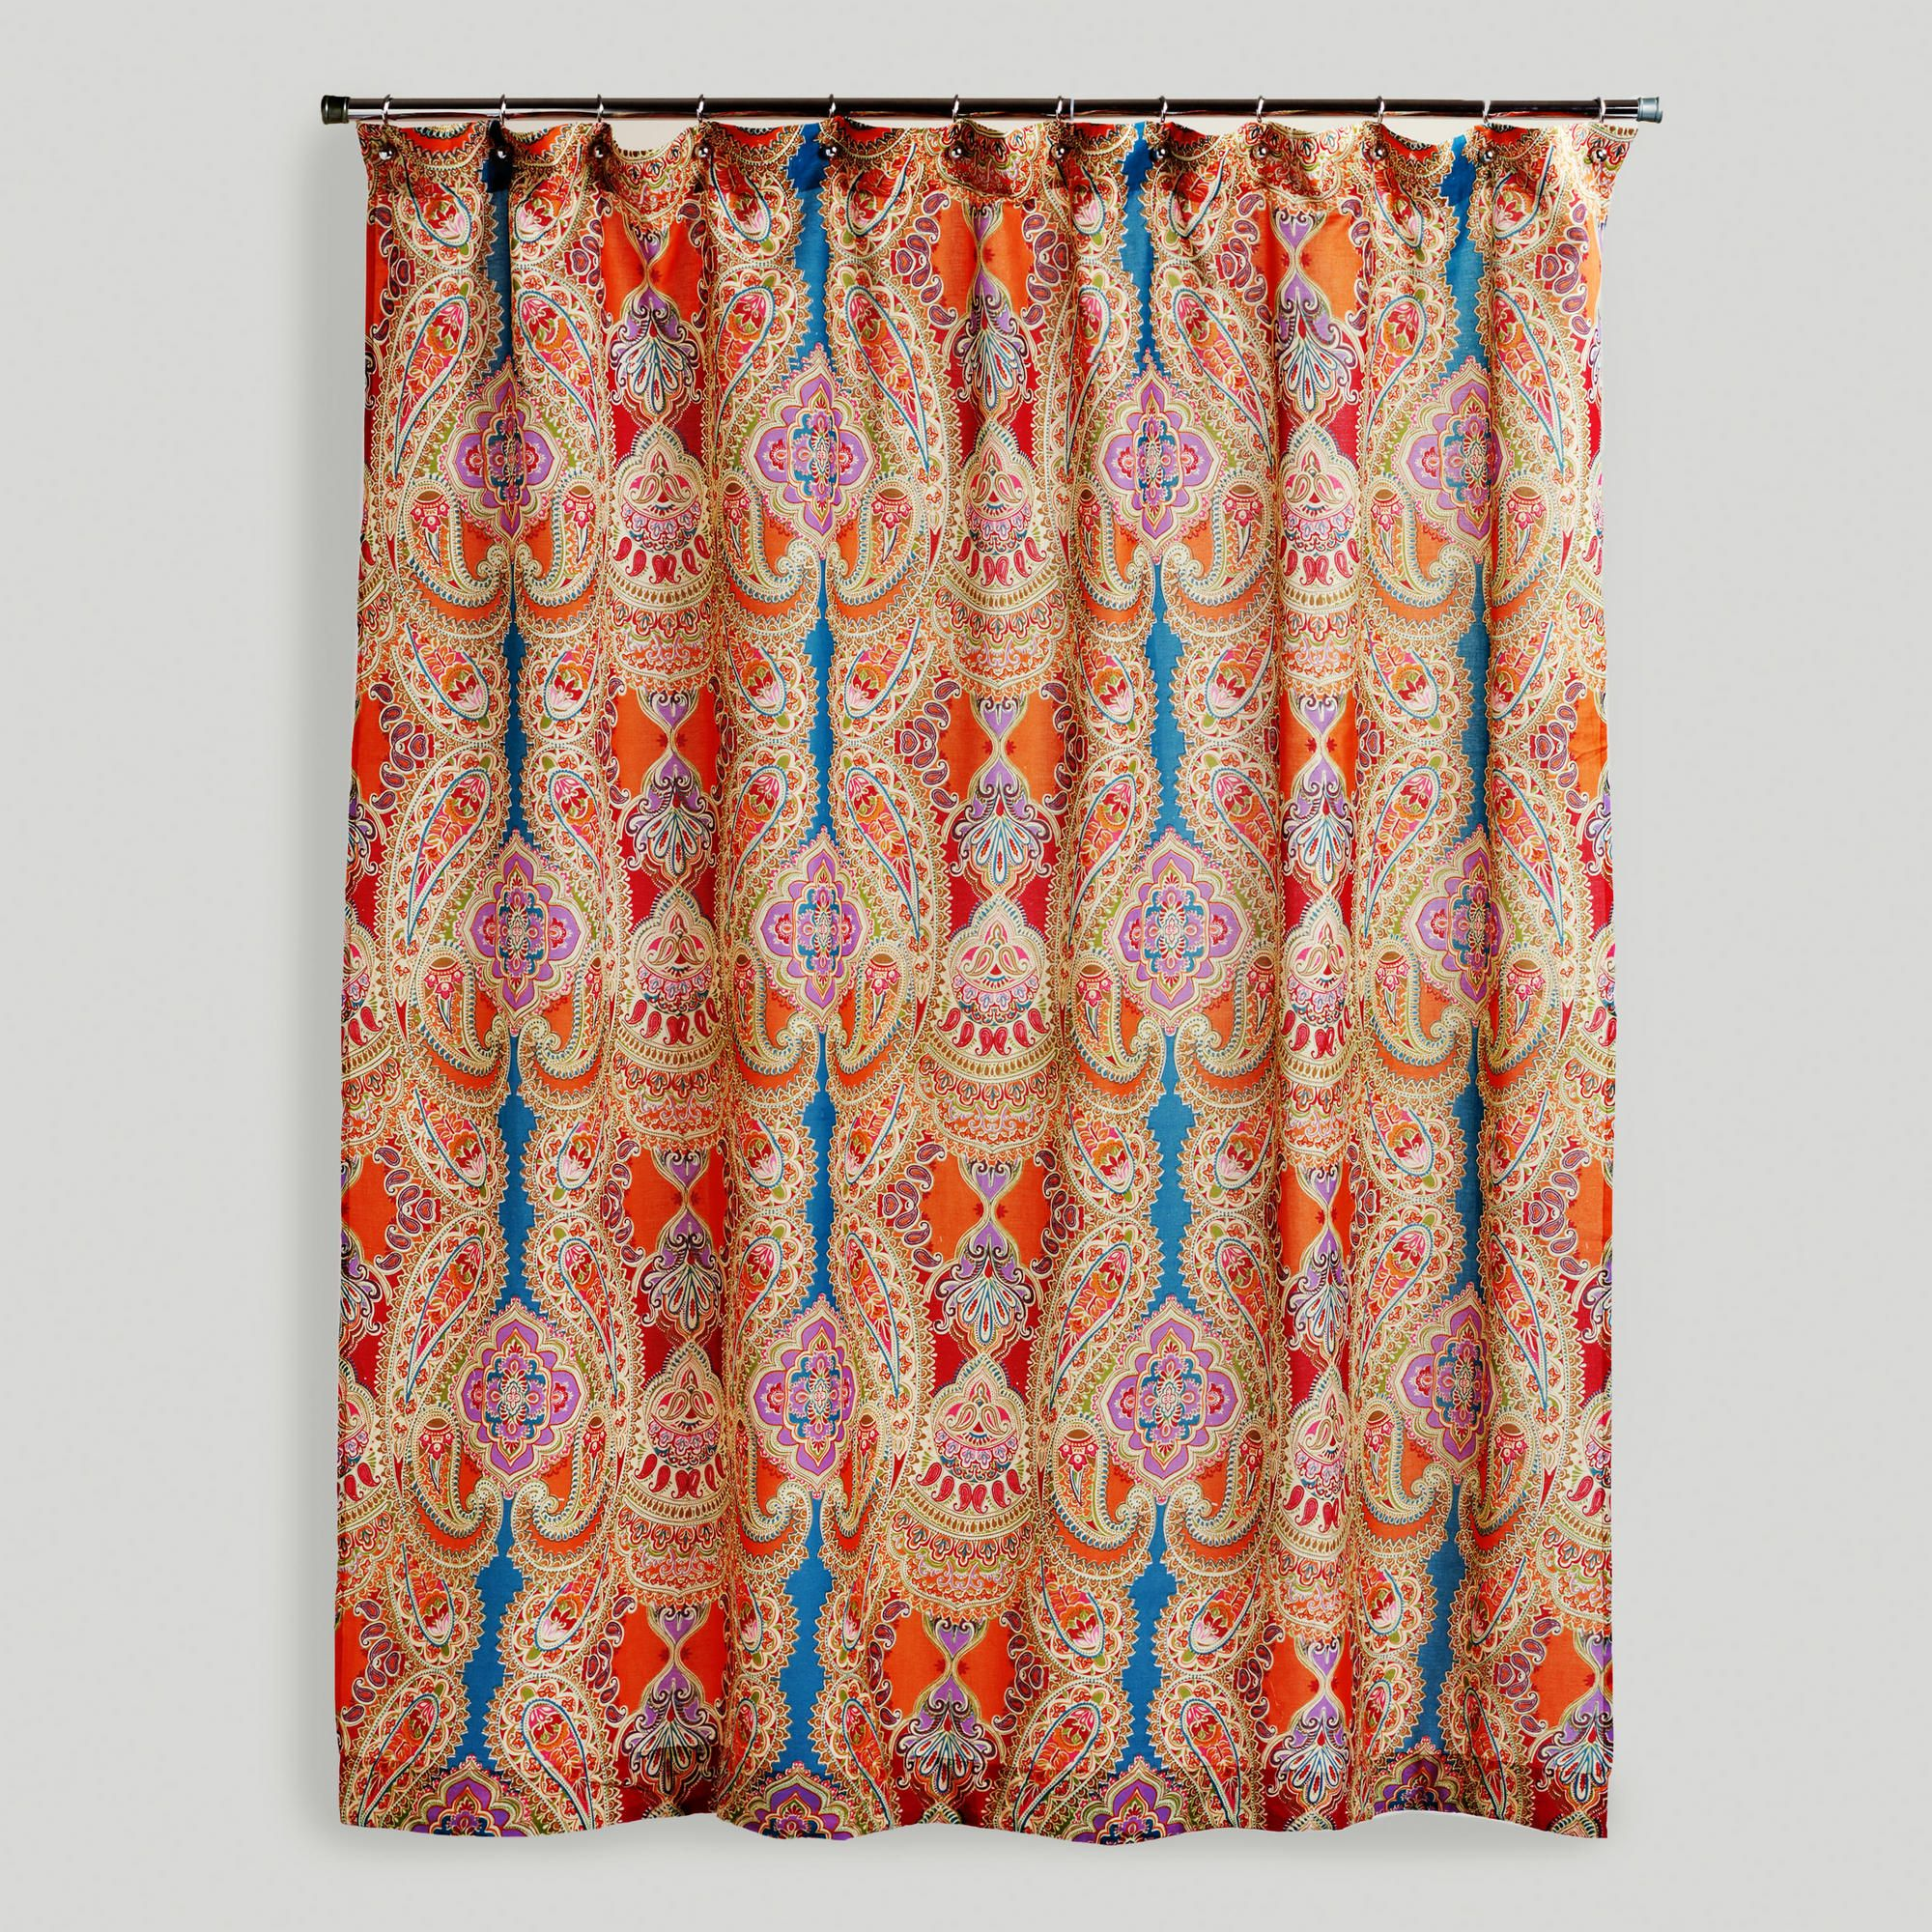 New Shower Curtain Upstairs Bathroom Painting The Room And Vanity Based Off Colors Of World Market Shower Curtain Boho Shower Curtain Paisley Shower Curtain